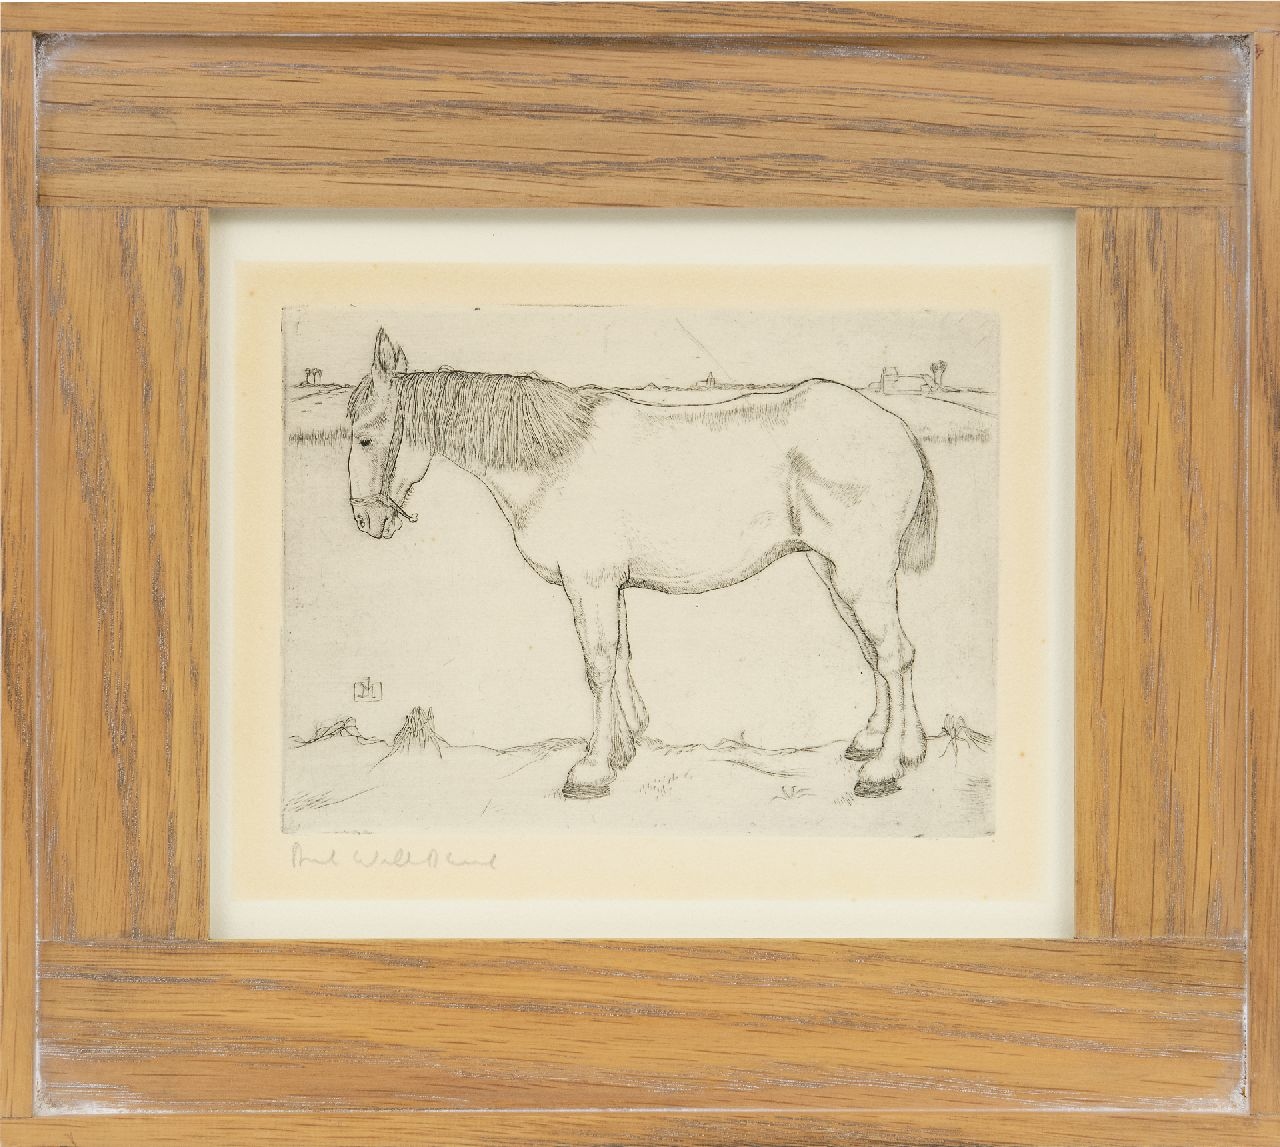 Mankes J.  | Jan Mankes | Prints and Multiples offered for sale | Standing horse, etching on paper 11.7 x 15.8 cm, signed c.l. with monogram in the plate and executed in 1917